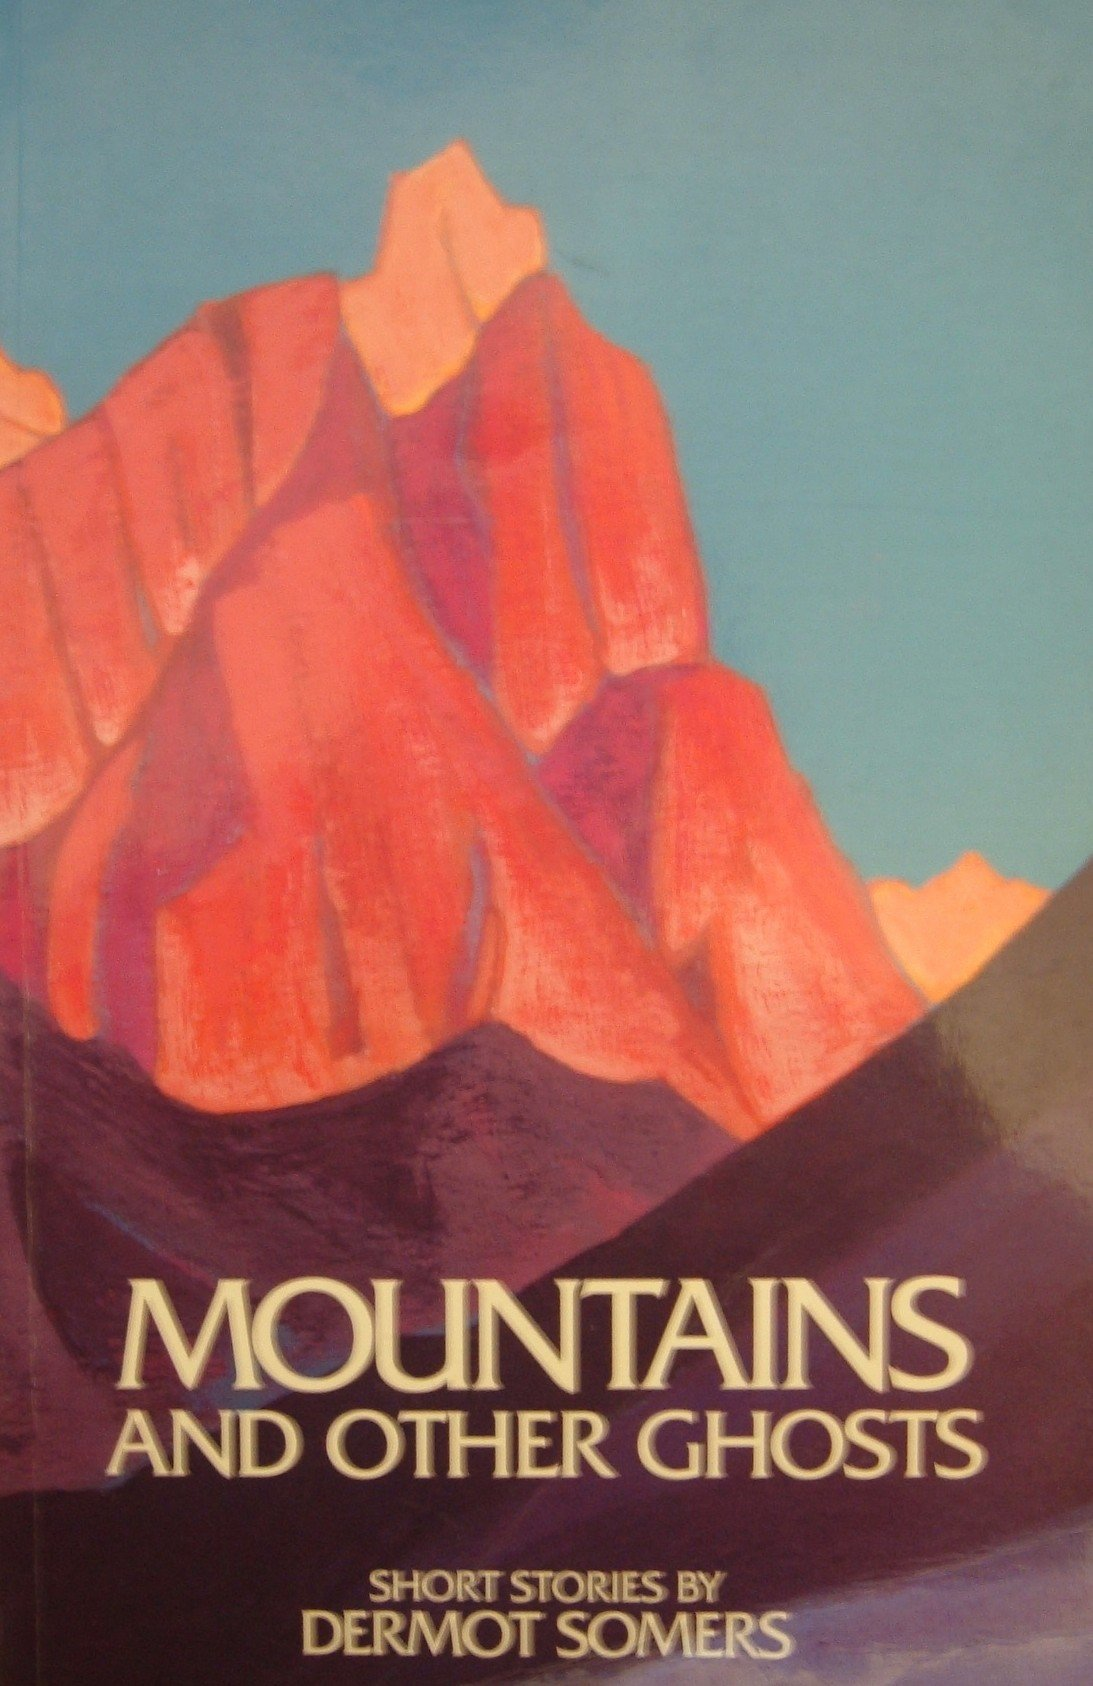 Mountains and Other Ghosts - Dermot Somers